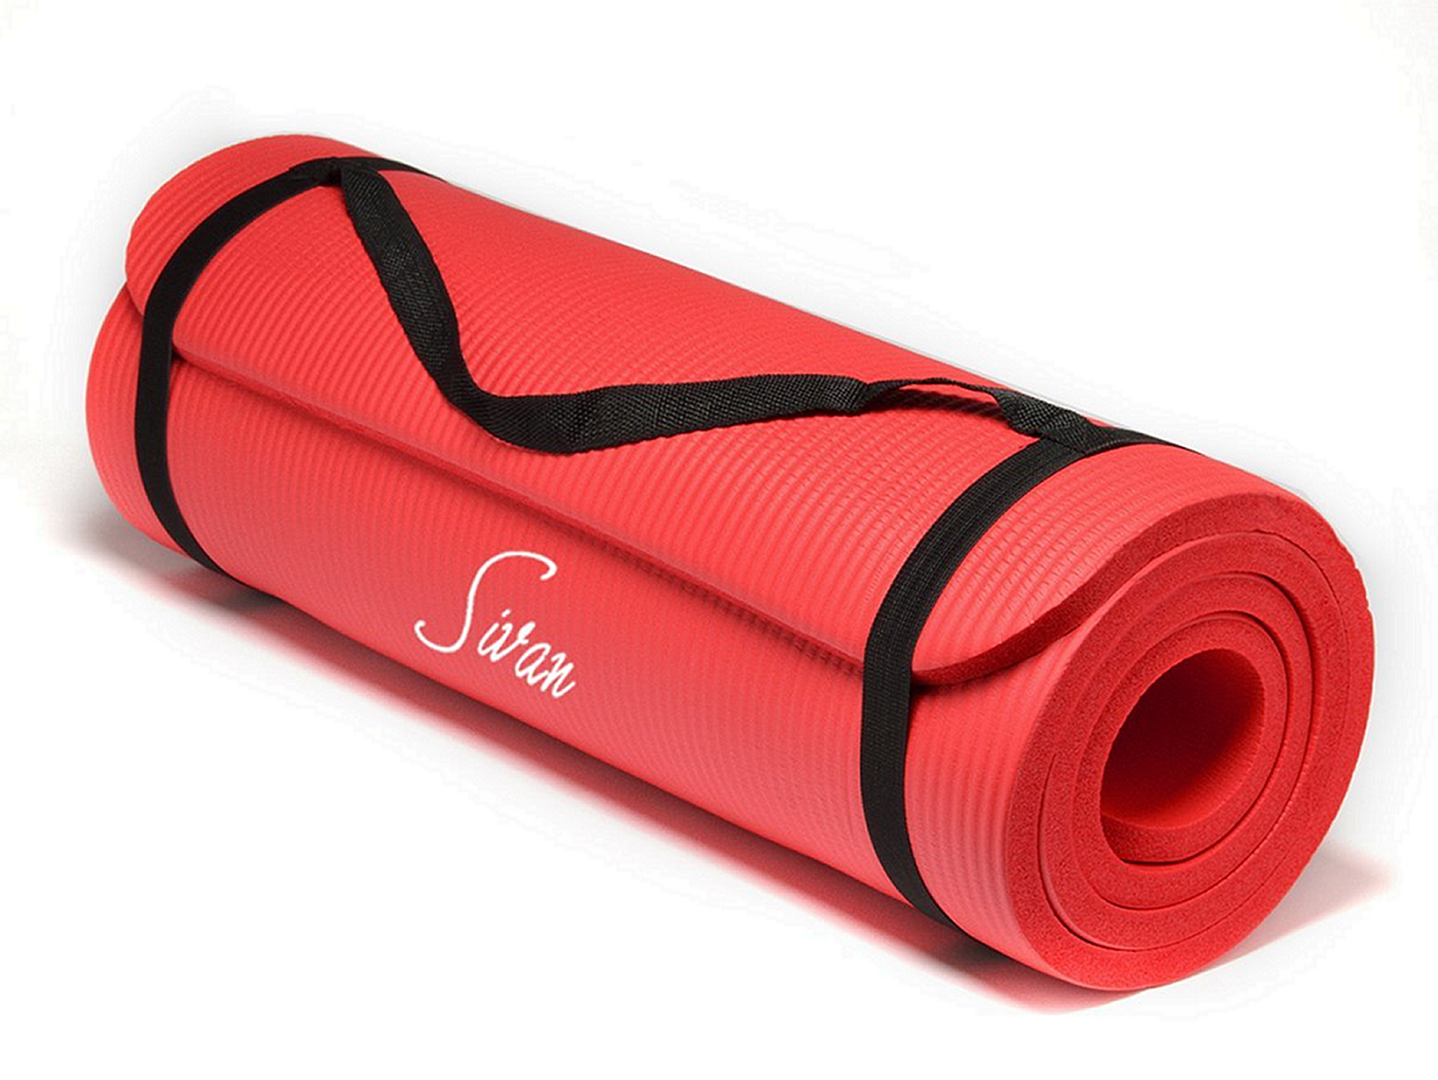 Siven 12mm Yoga Mat, red